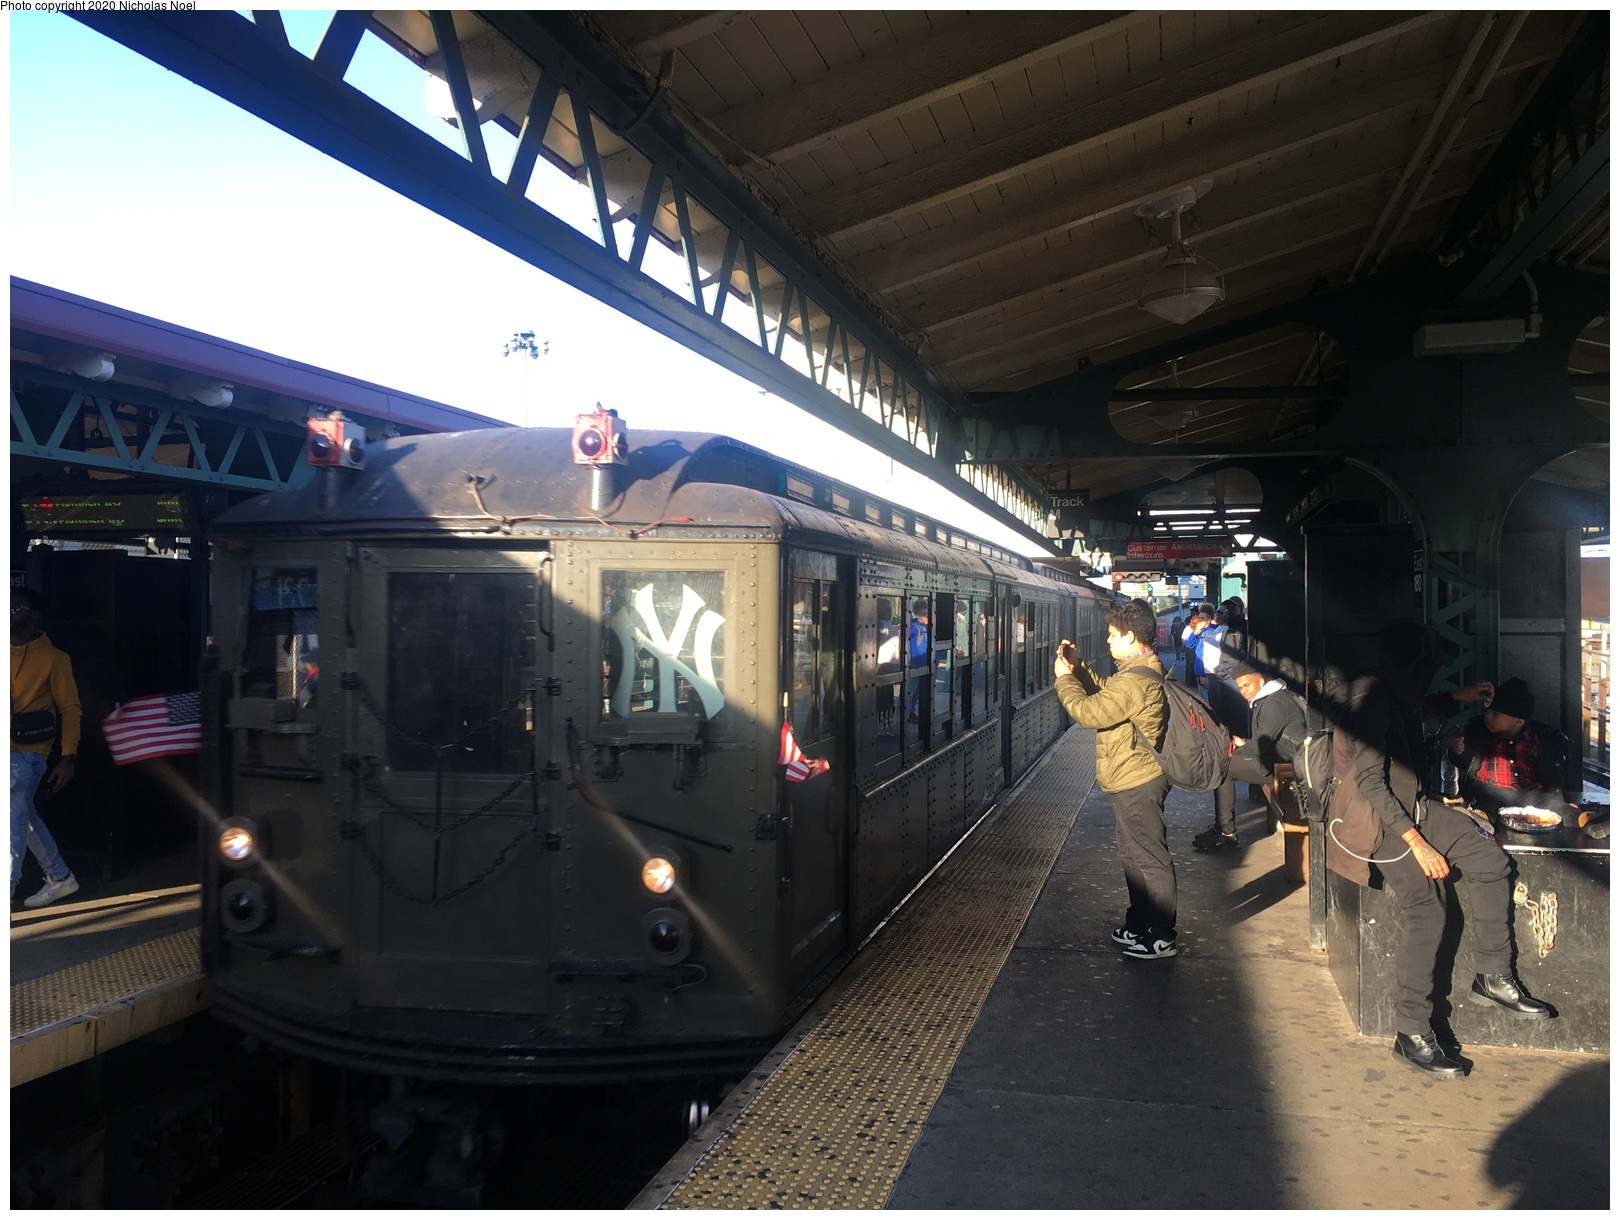 (214k, 806x820)<br><b>Country:</b> United States<br><b>City:</b> New York<br><b>System:</b> New York City Transit<br><b>Line:</b> IRT West Side Line<br><b>Location:</b> Chambers Street <br><b>Car:</b> Low-V  <br><b>Photo by:</b> Joel Shanus<br><b>Viewed (this week/total):</b> 0 / 2270